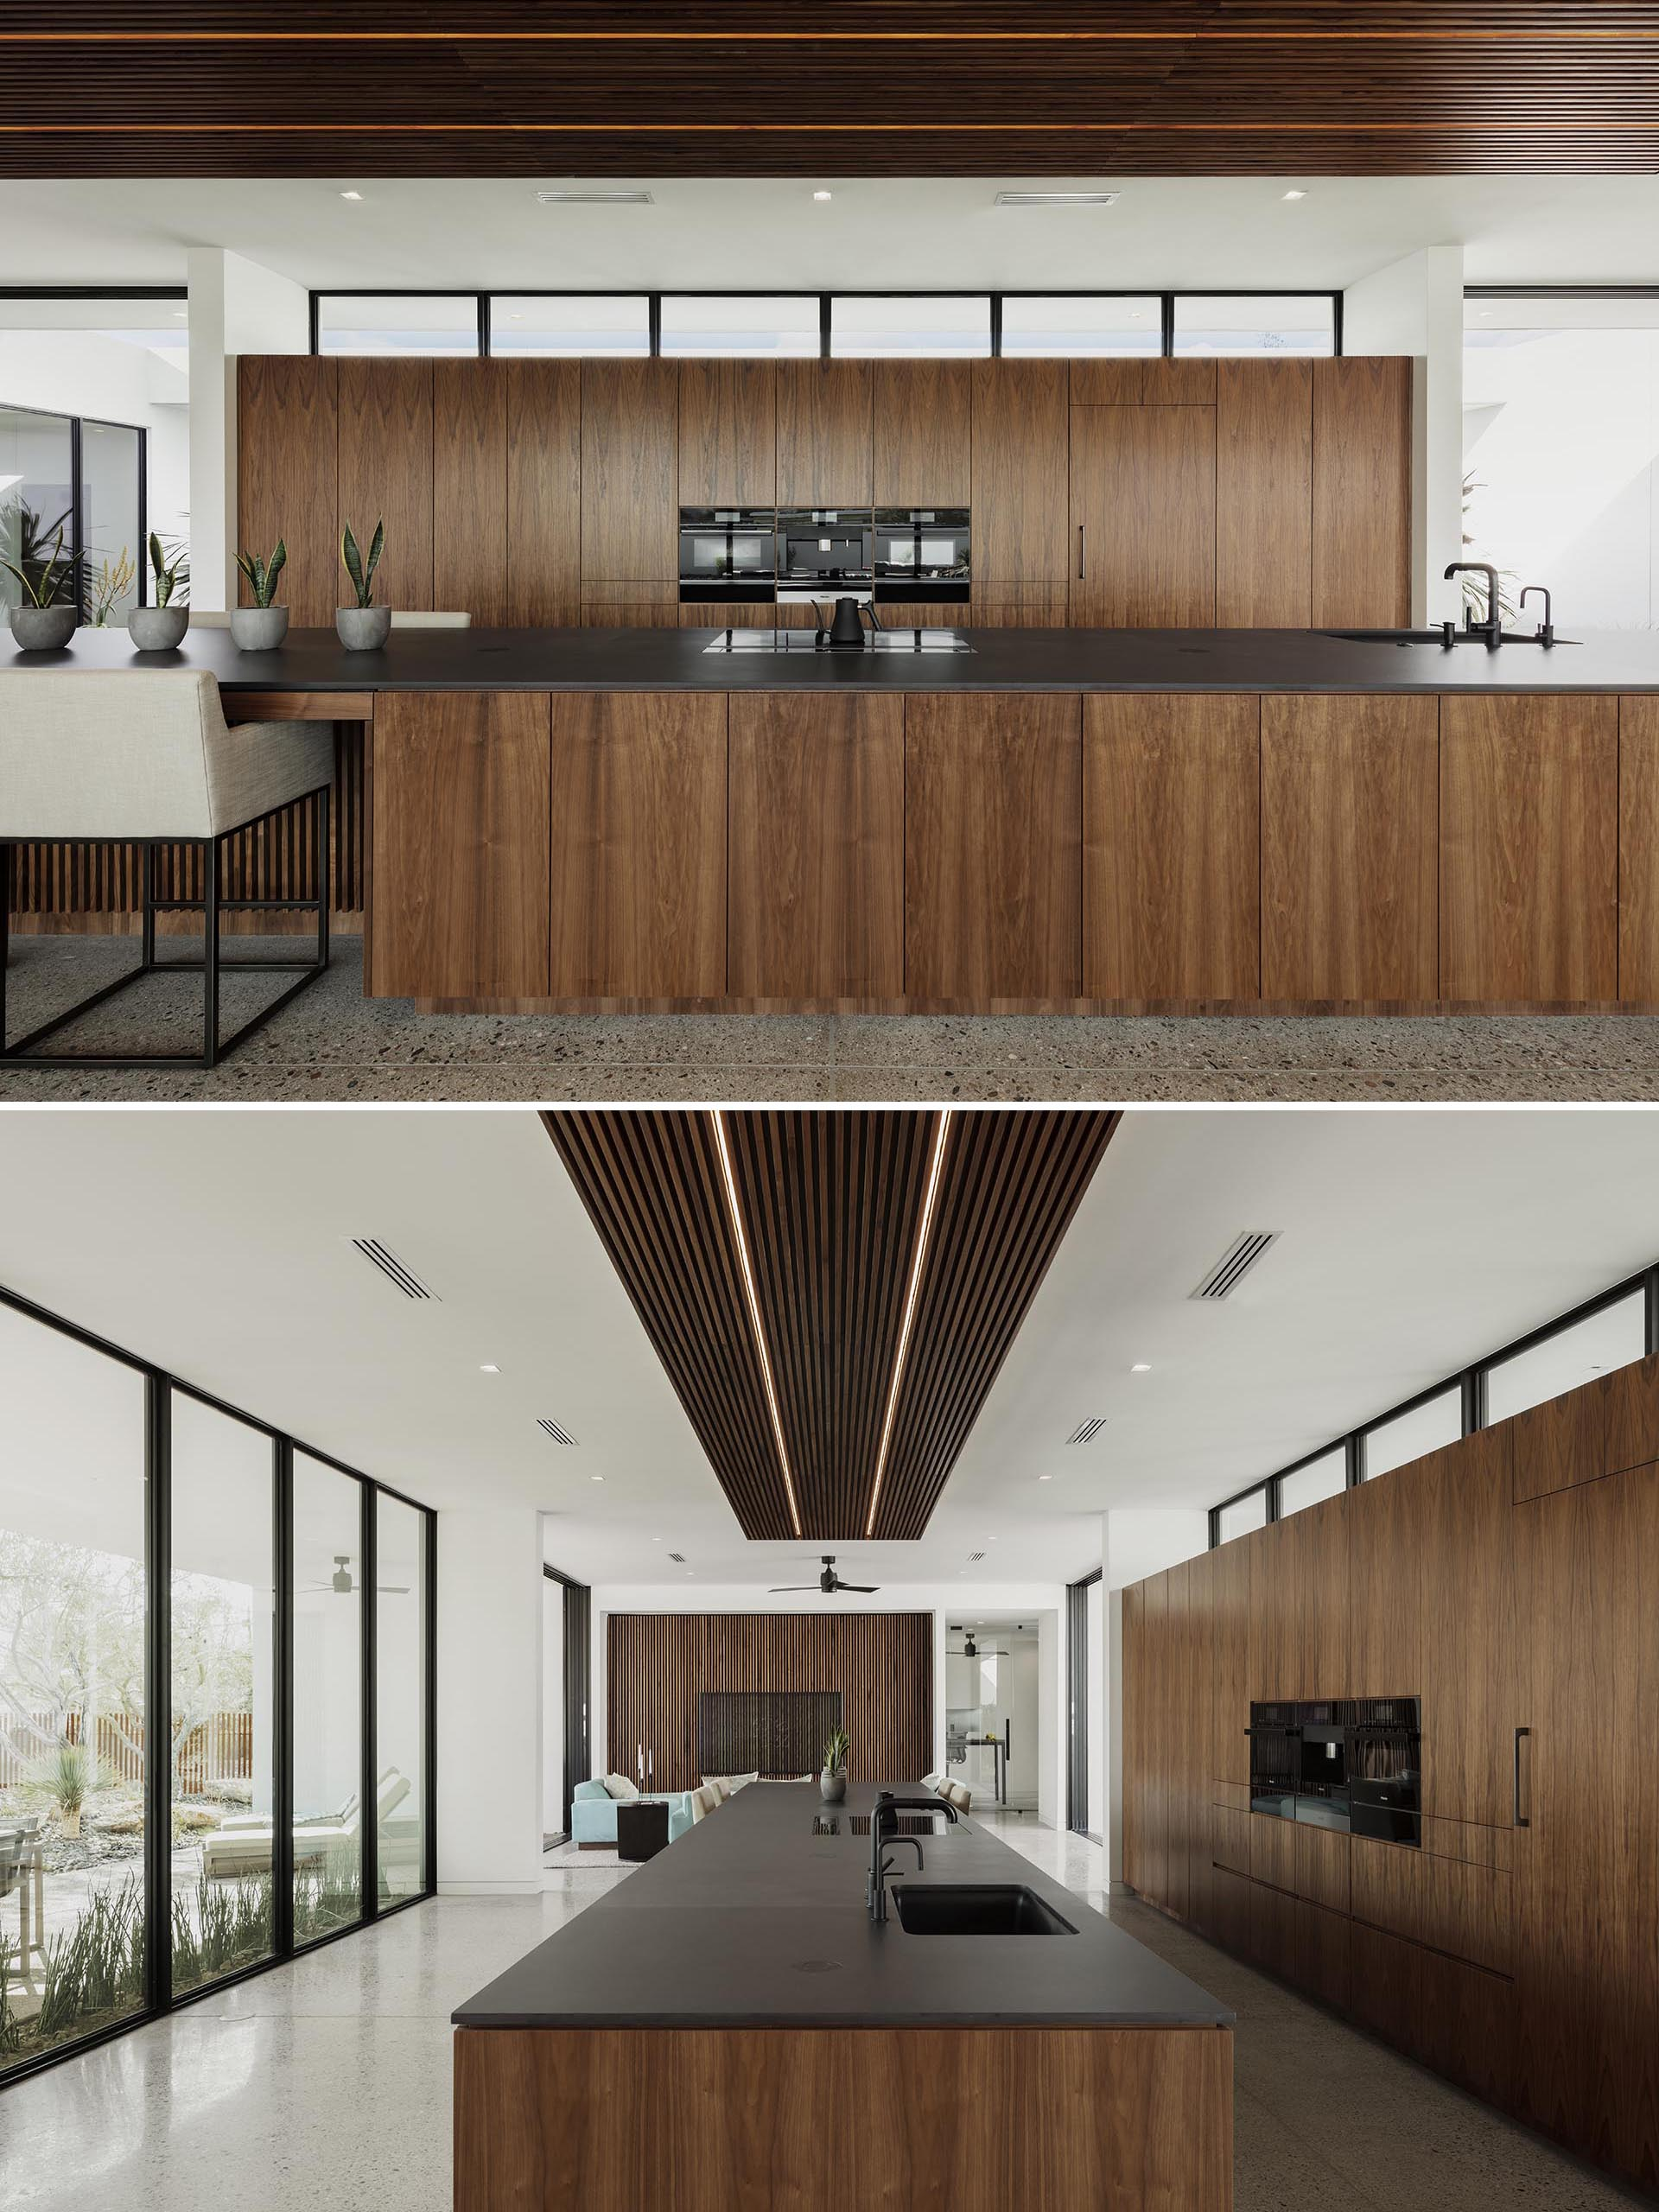 A modern wood and black kitchen.